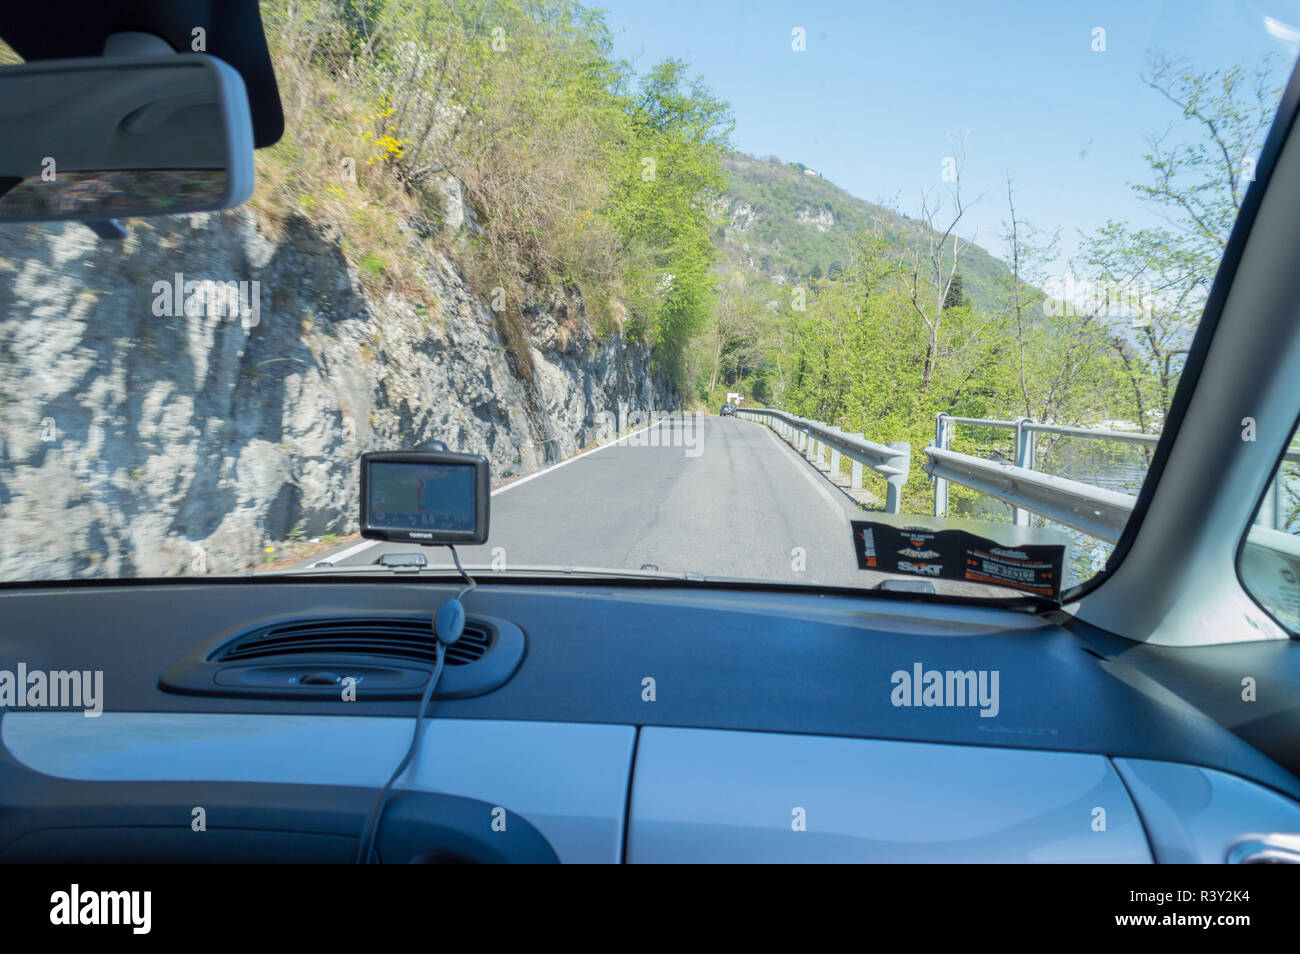 View through front window of a car. SIXT waiver and TomTom satnav sticking on the glass - Stock Image